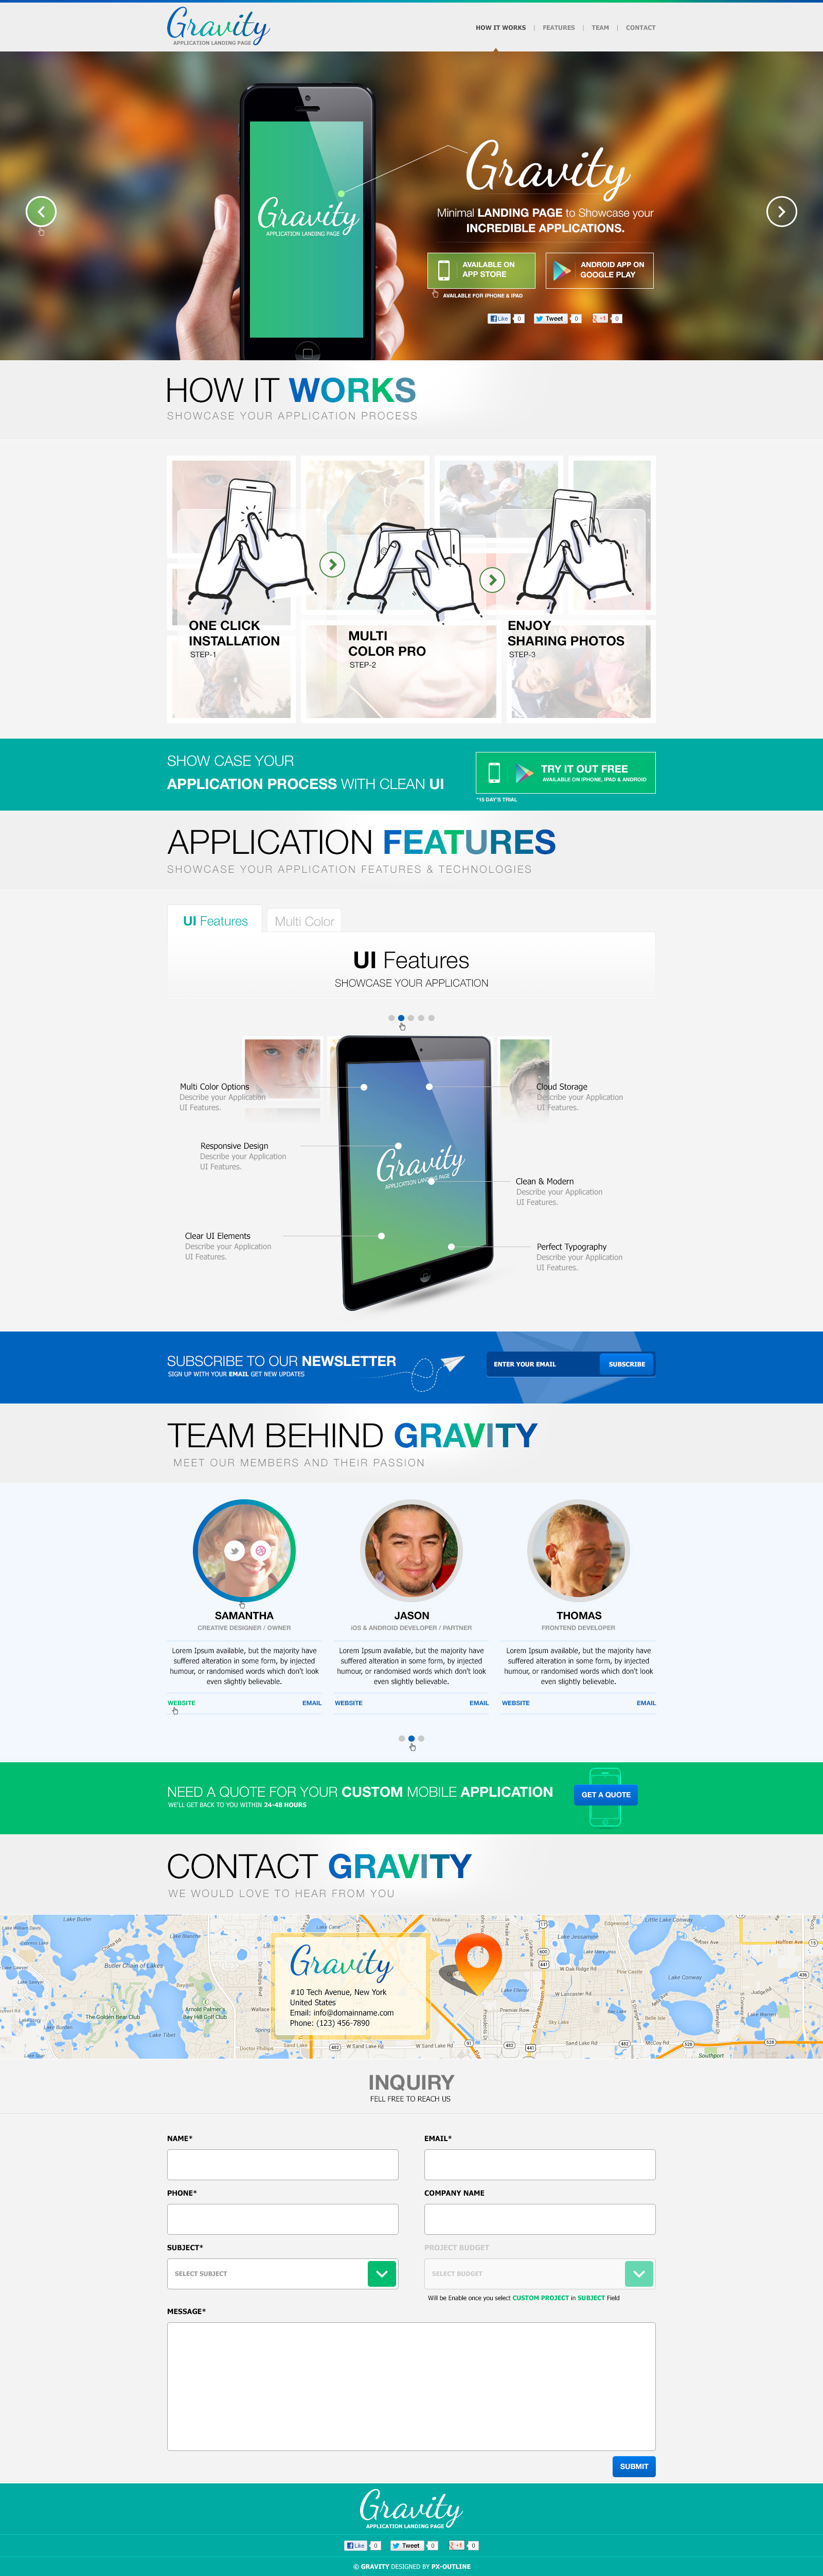 Gravity mobile app landing page psd by pxoutline for Facebook app template psd